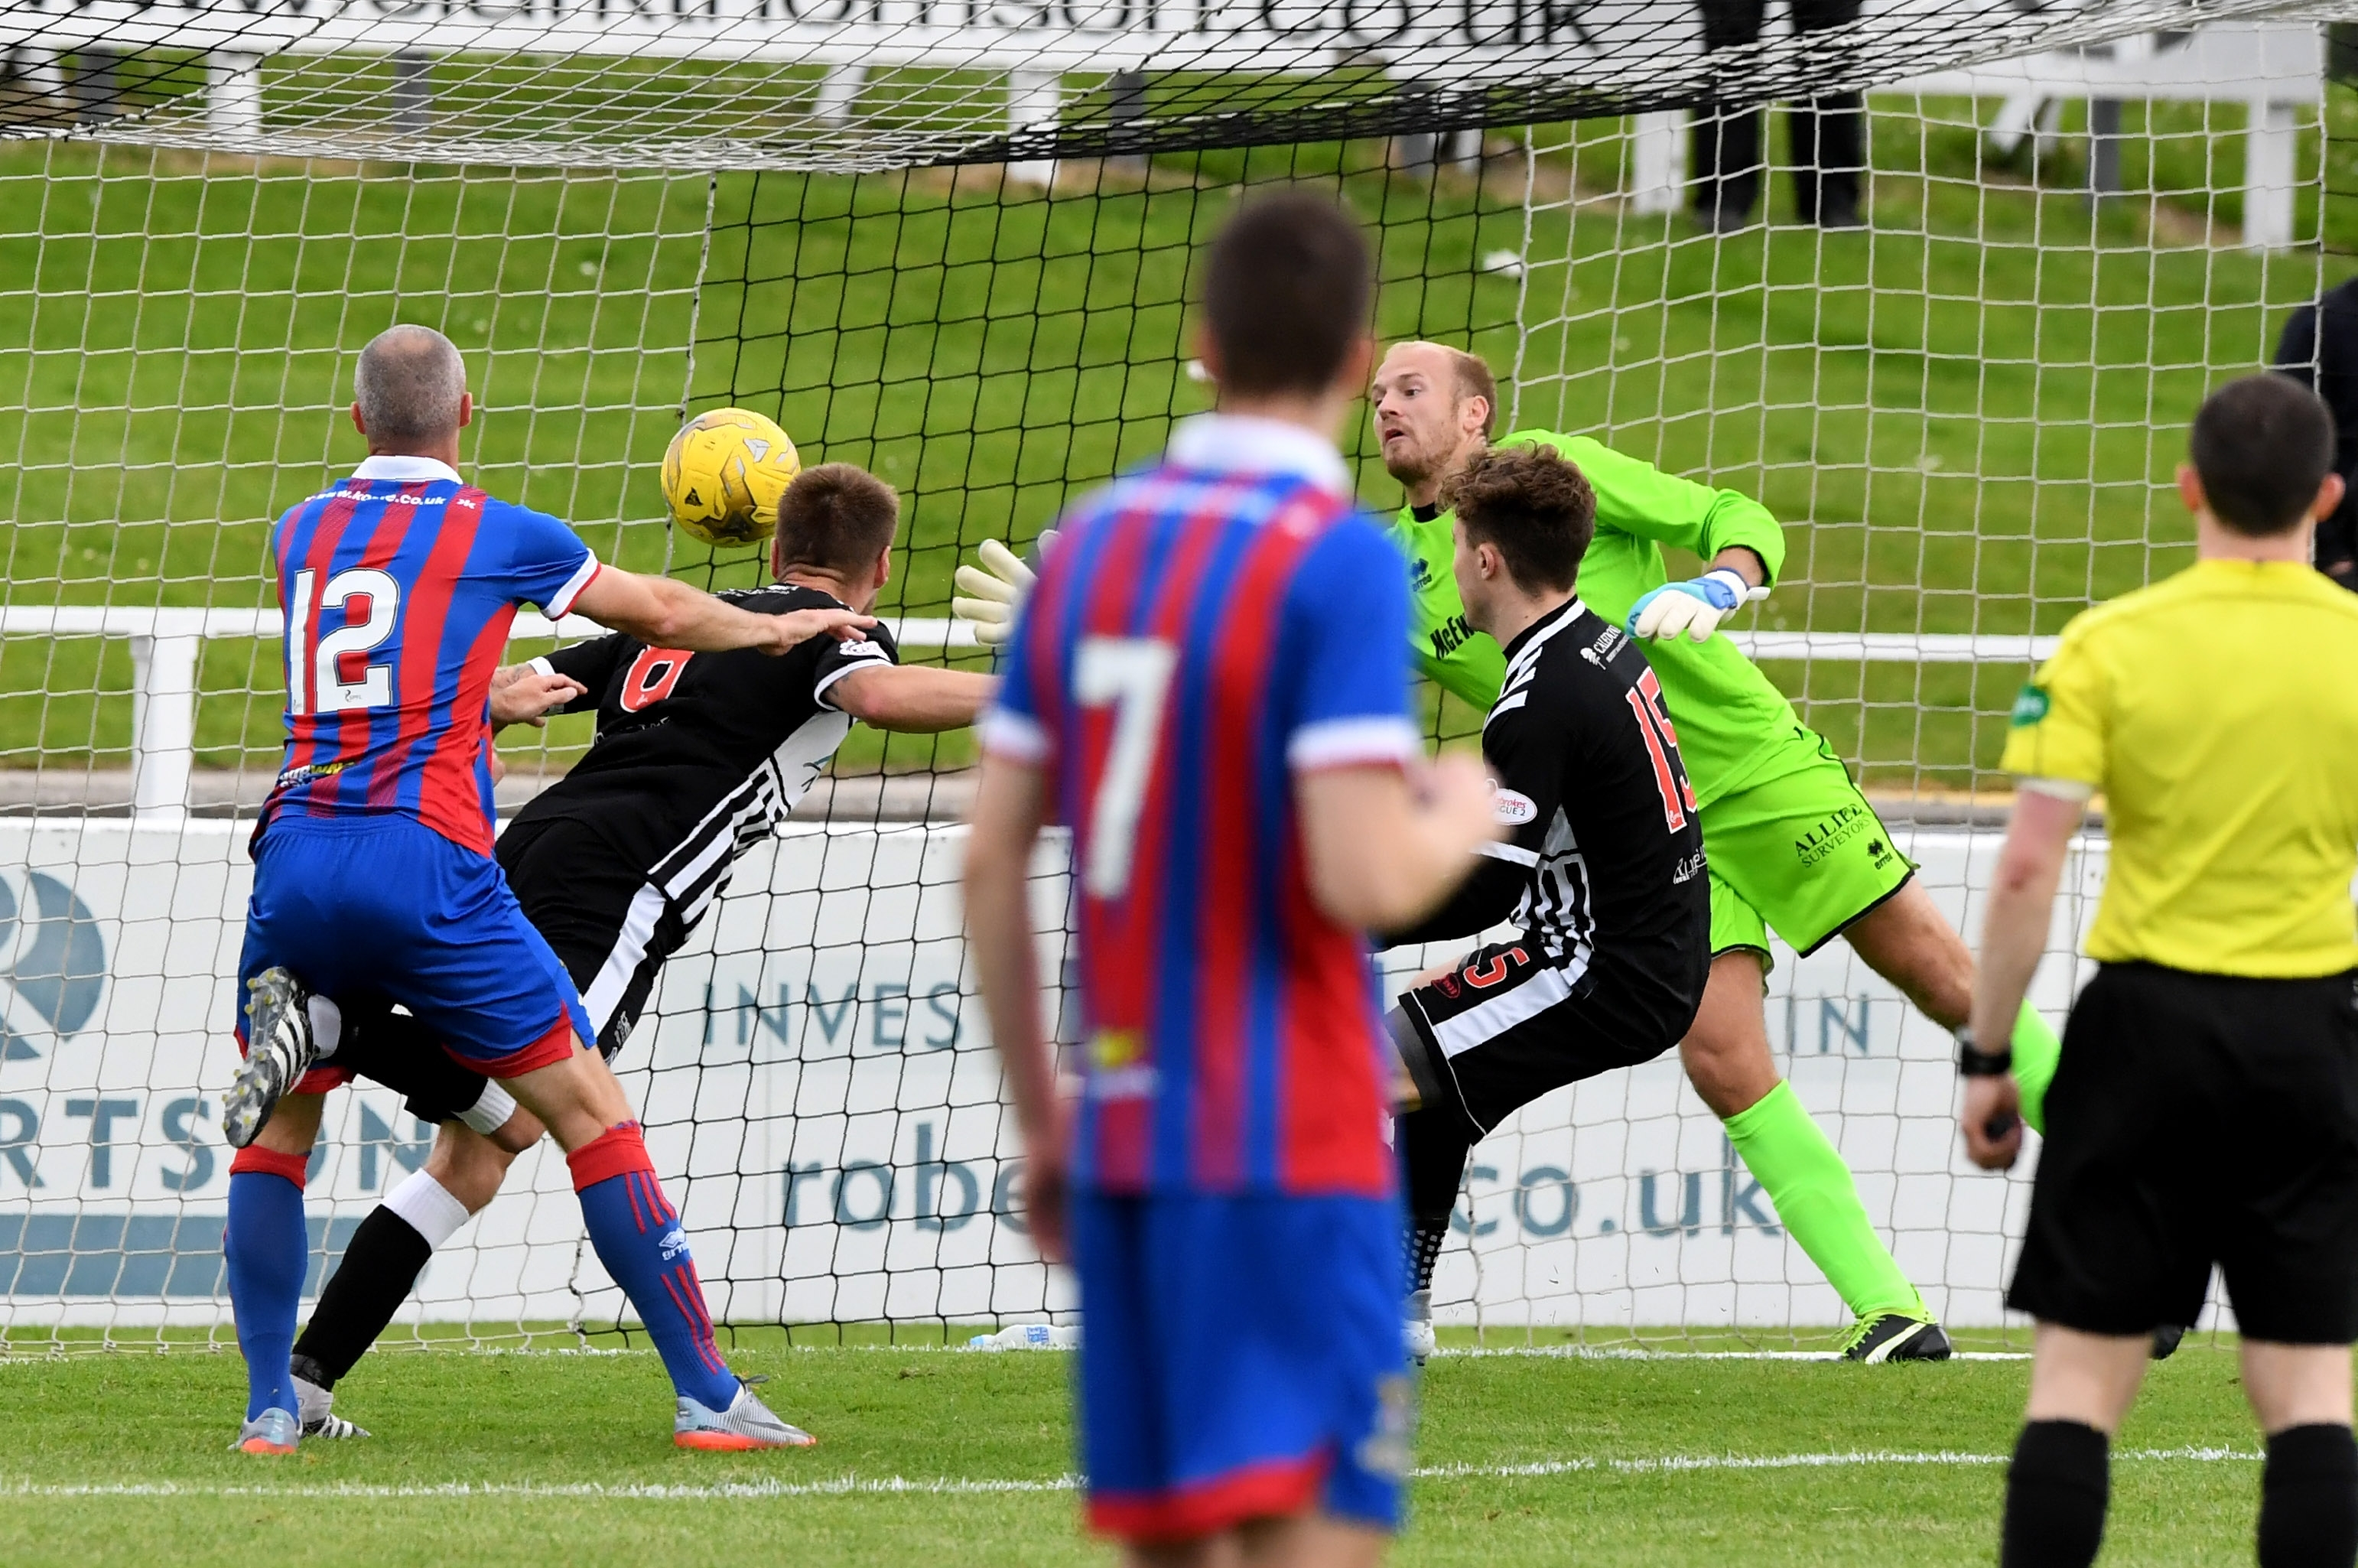 Elgin's Brian Cameron scores to make it 1-0